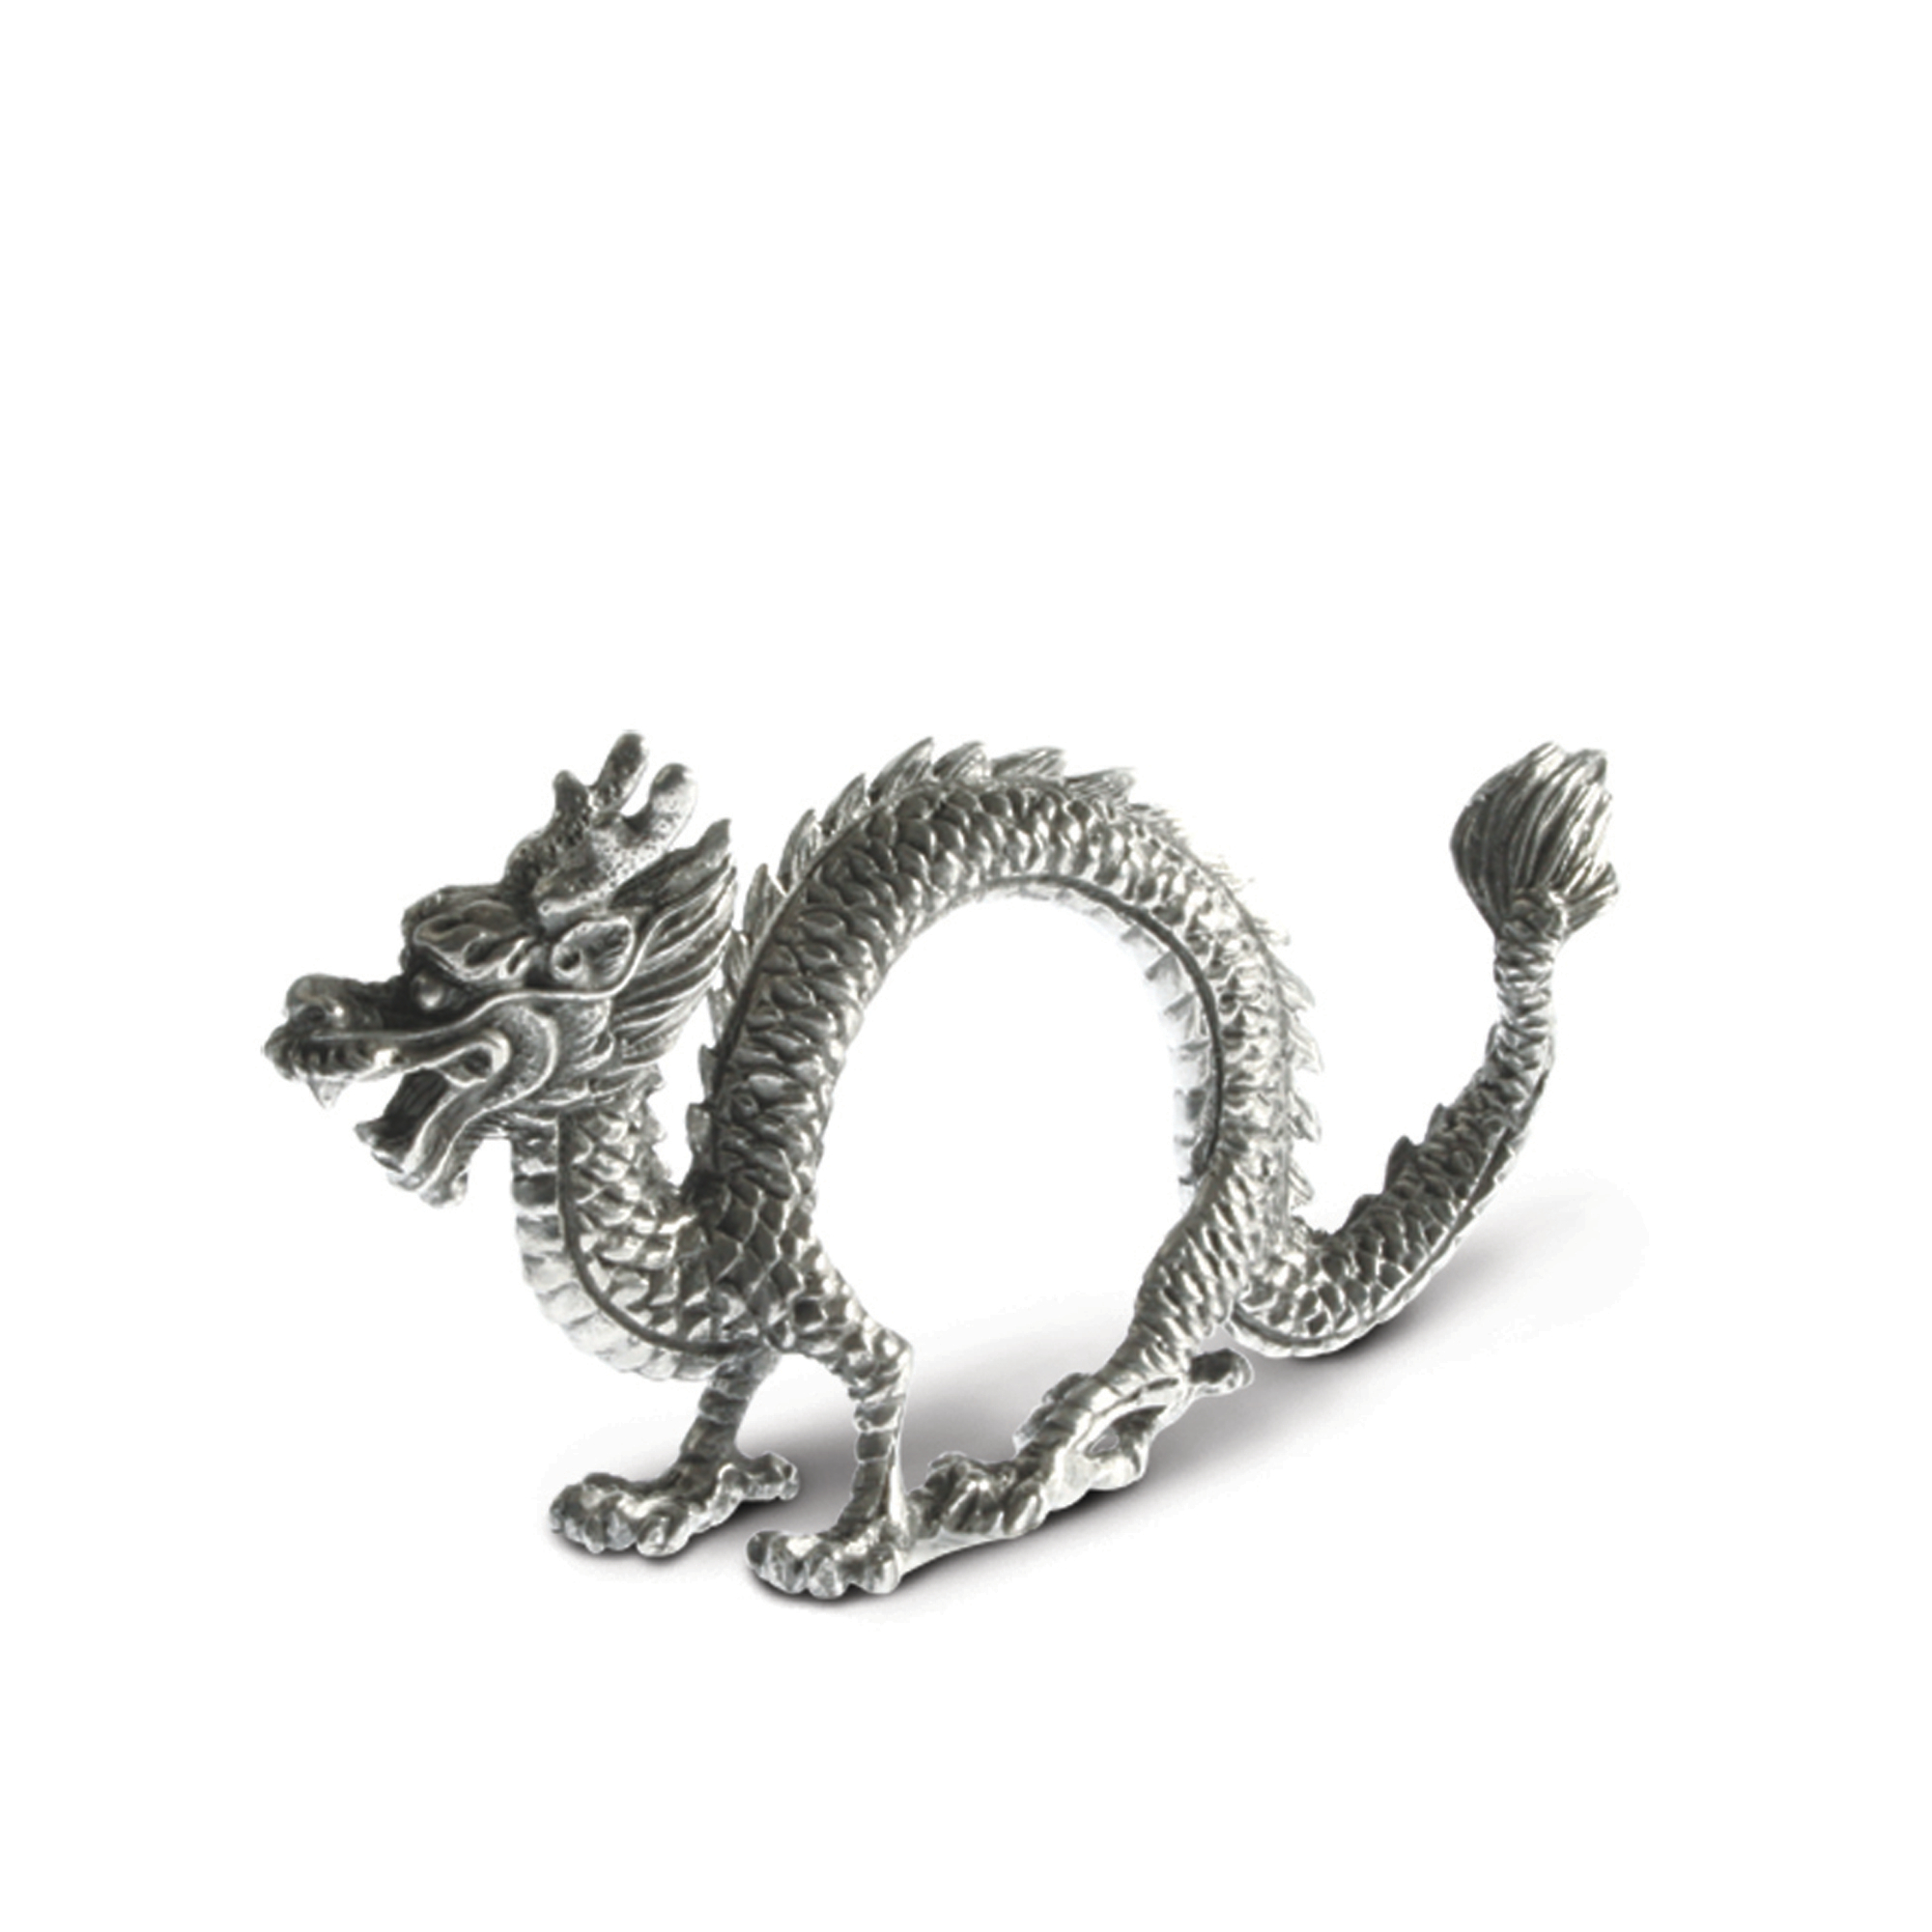 Vagabond House Dragon Napkin Rings, Set of 4